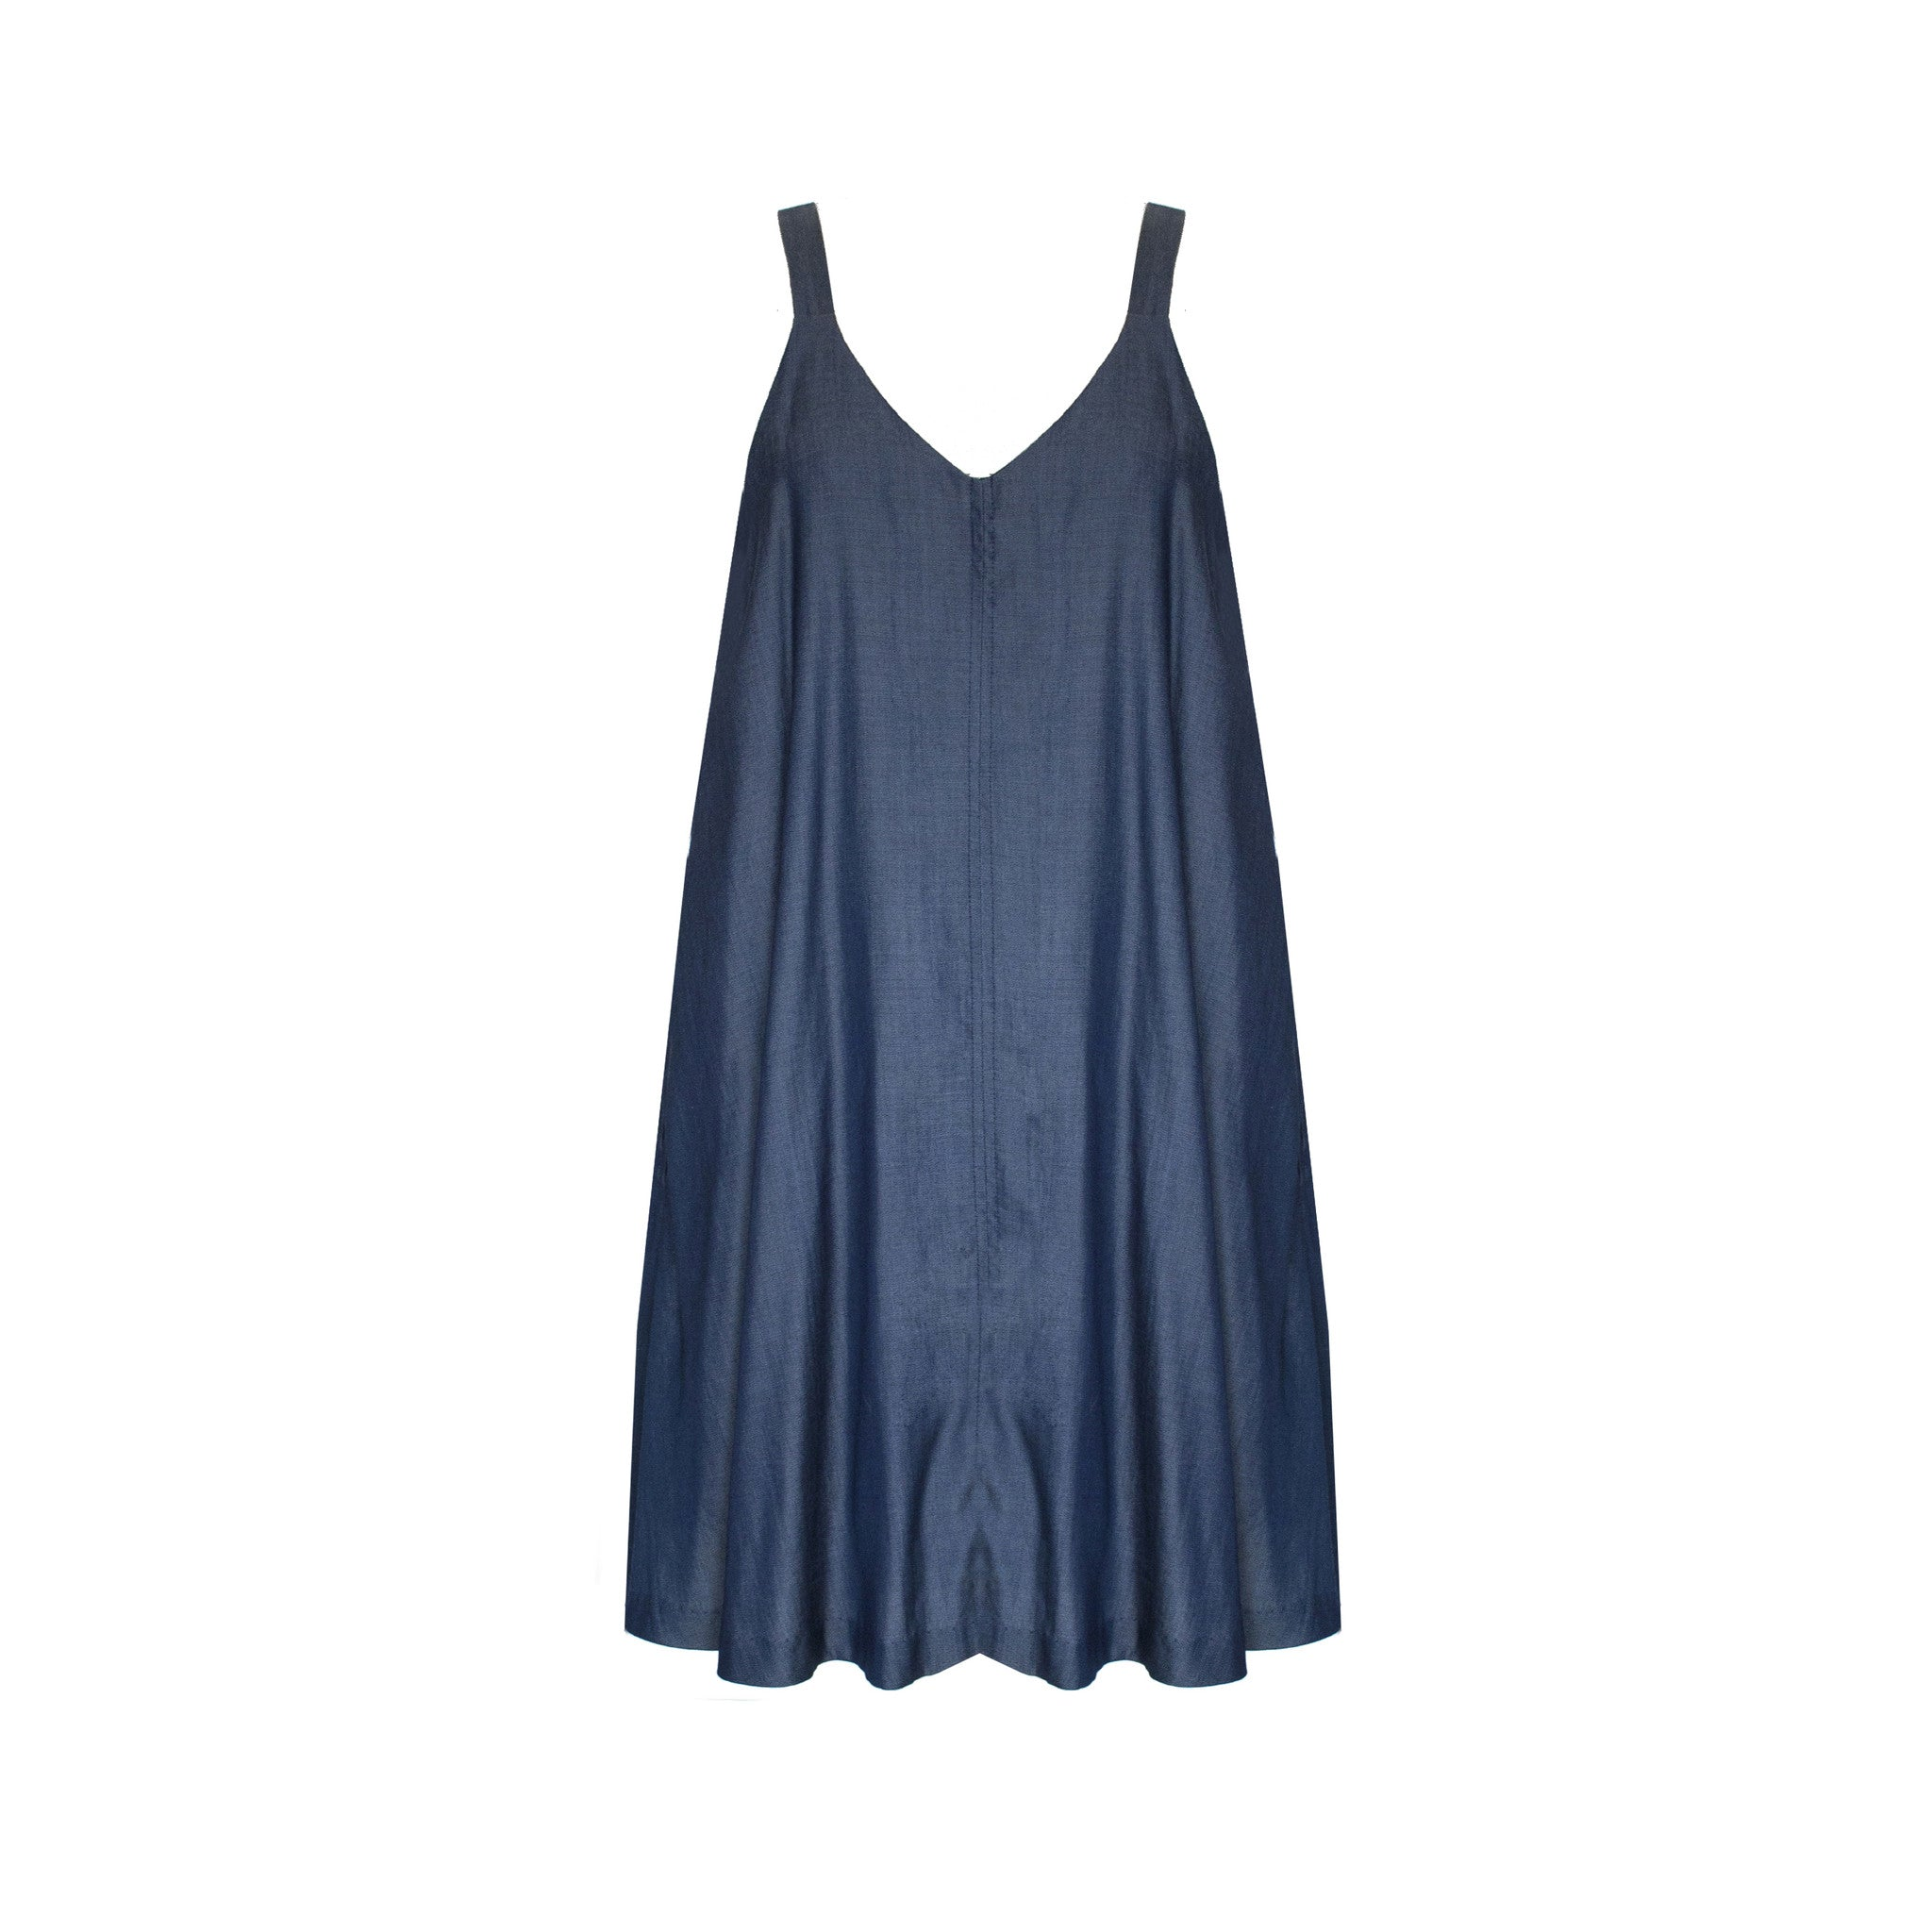 Sisilia Dress in Blue